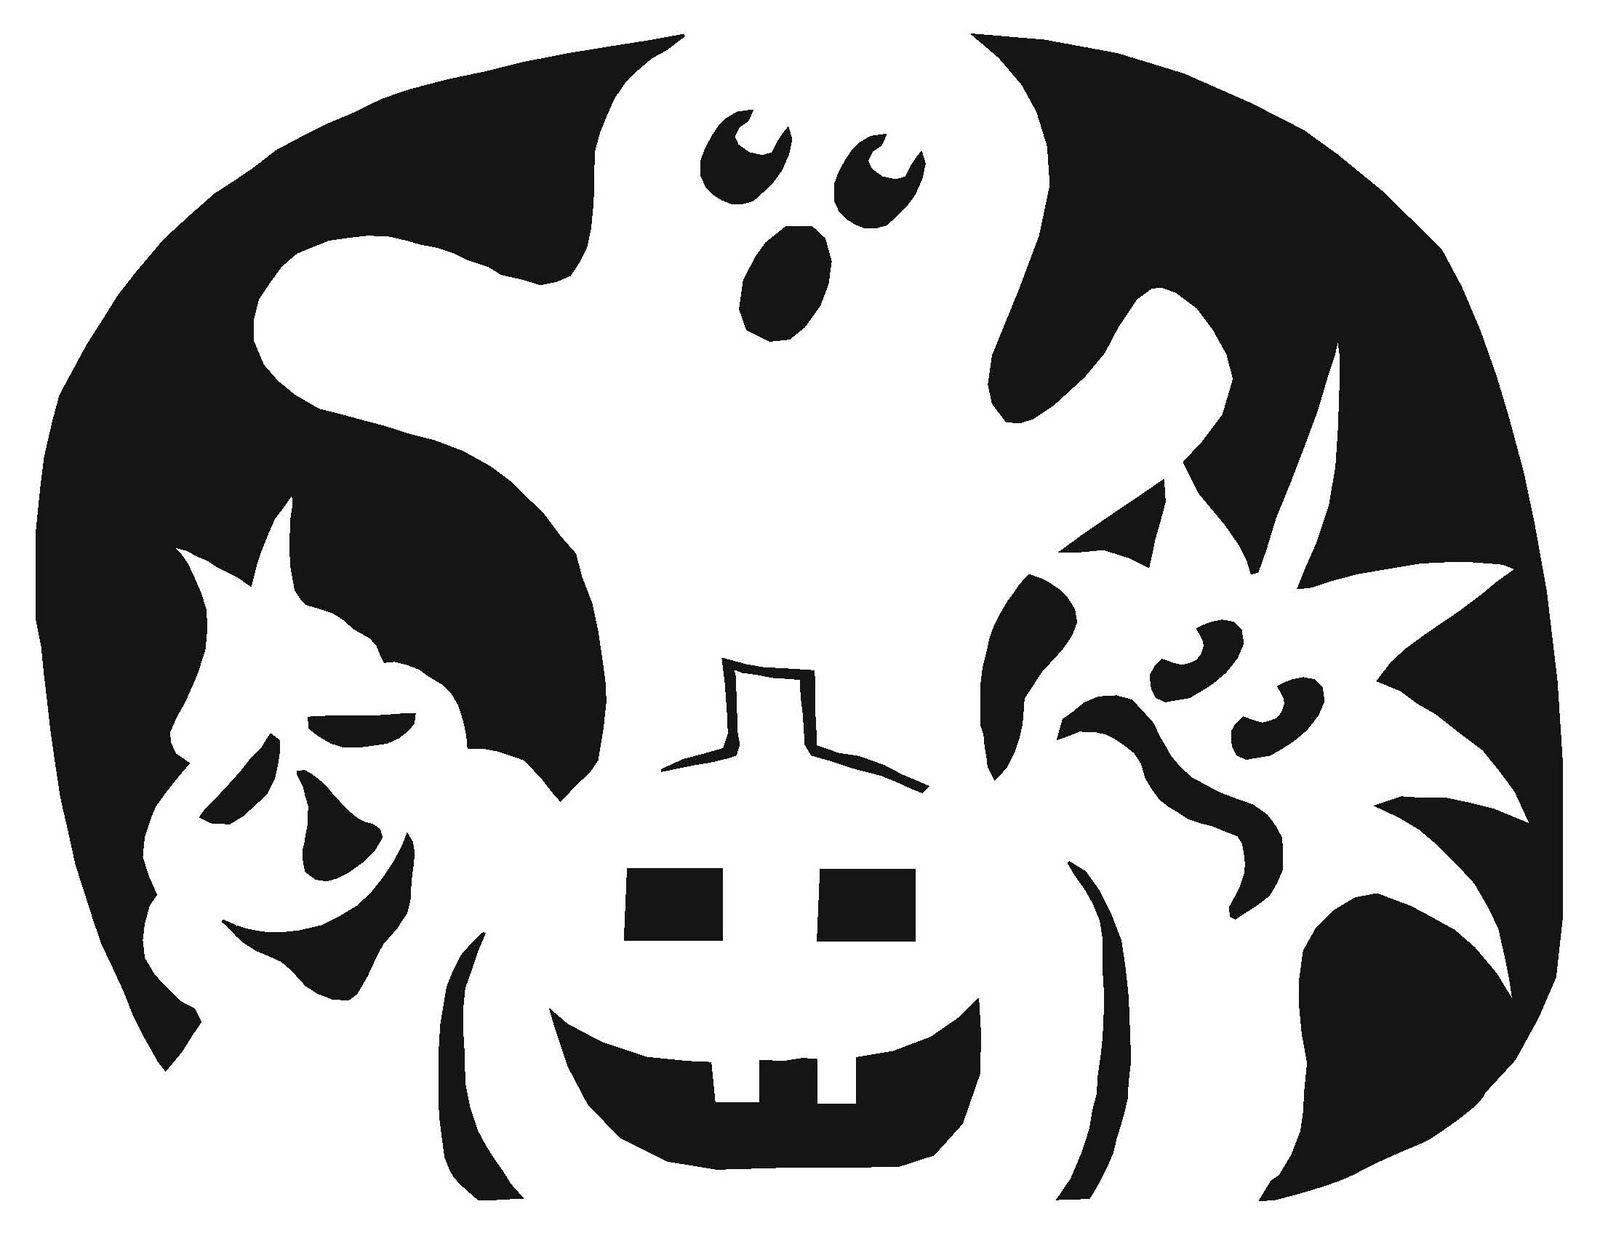 pumpkin images carve pumpkin ghost clipart 20 free cliparts download images pumpkin